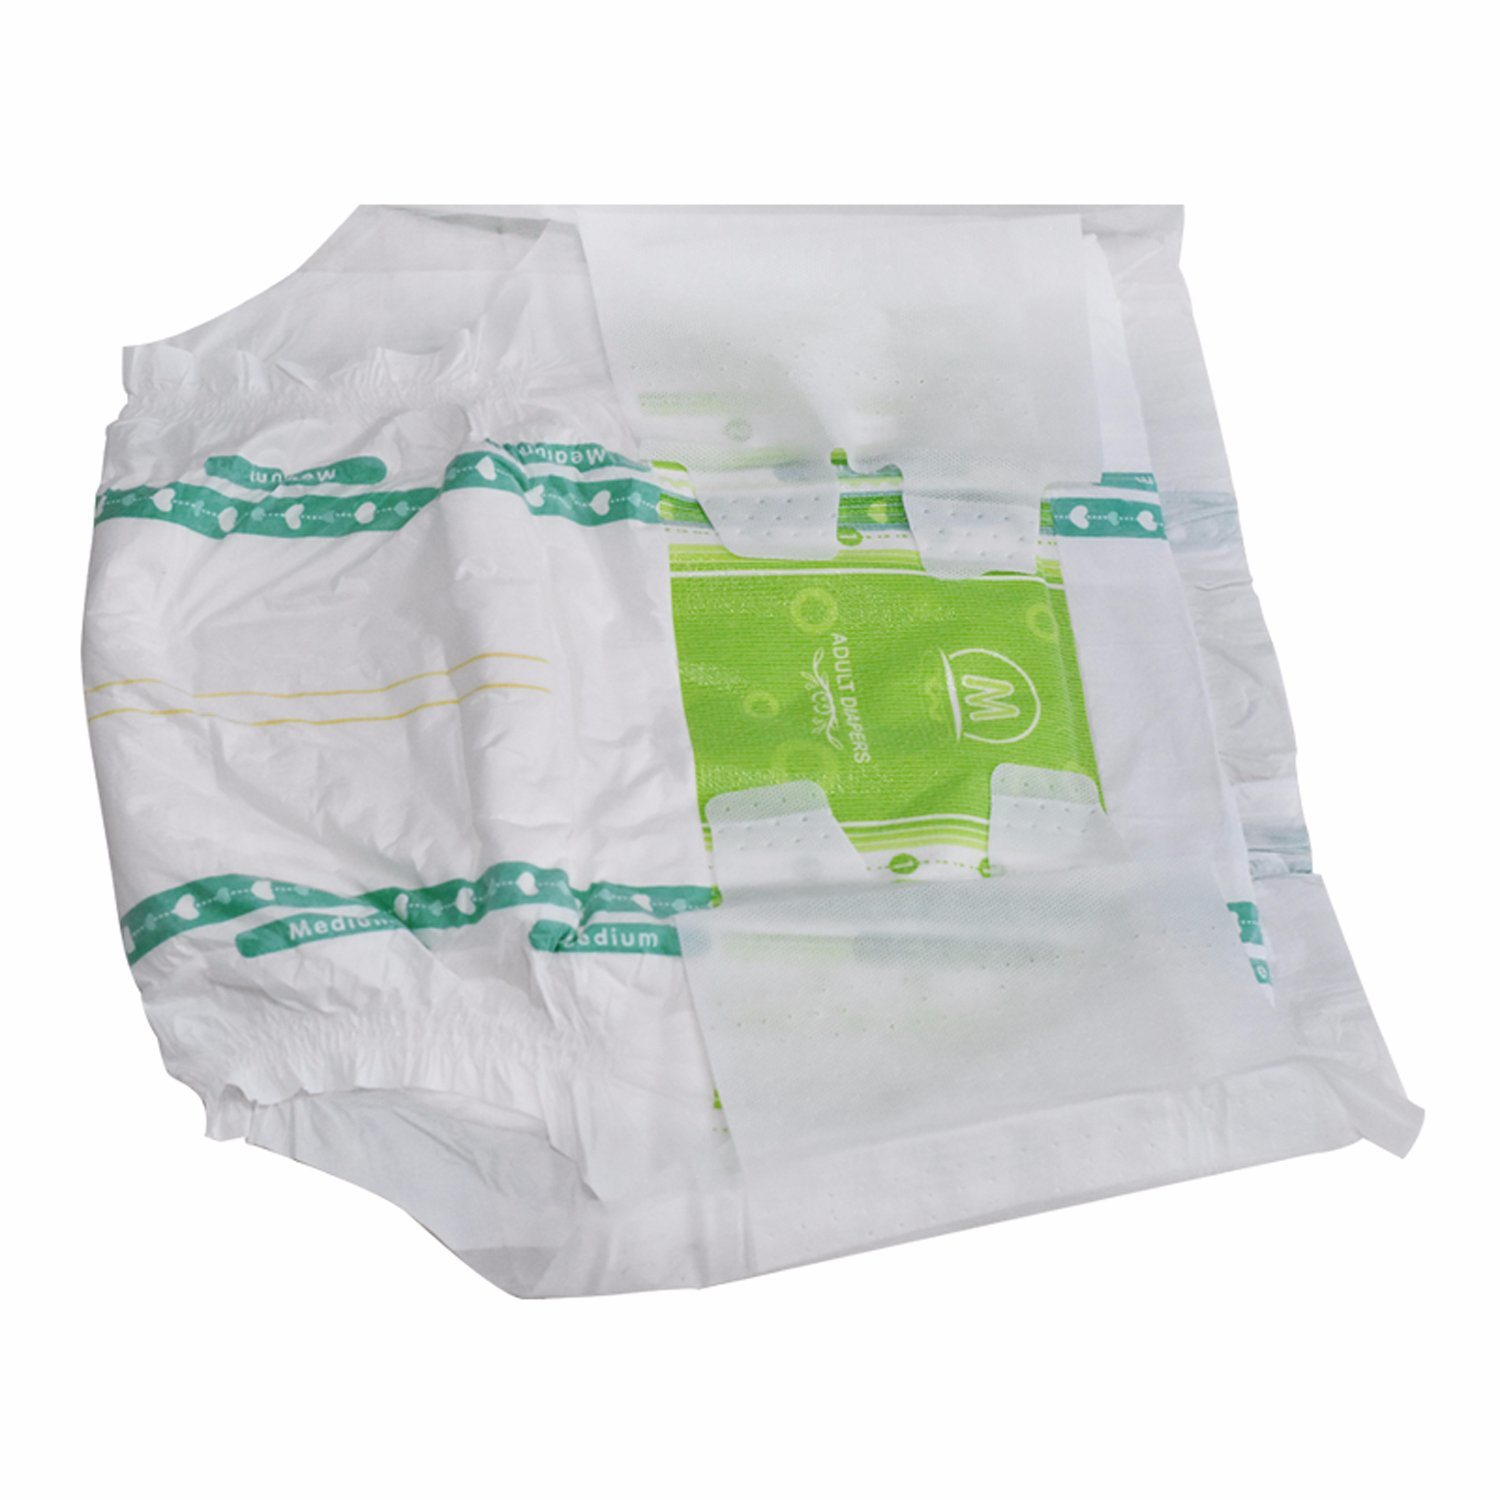 Disposable Magic Tape Hold Adult Diapers OEM Manufacturer Breathable Cloth-Like Back Sheet pictures & photos